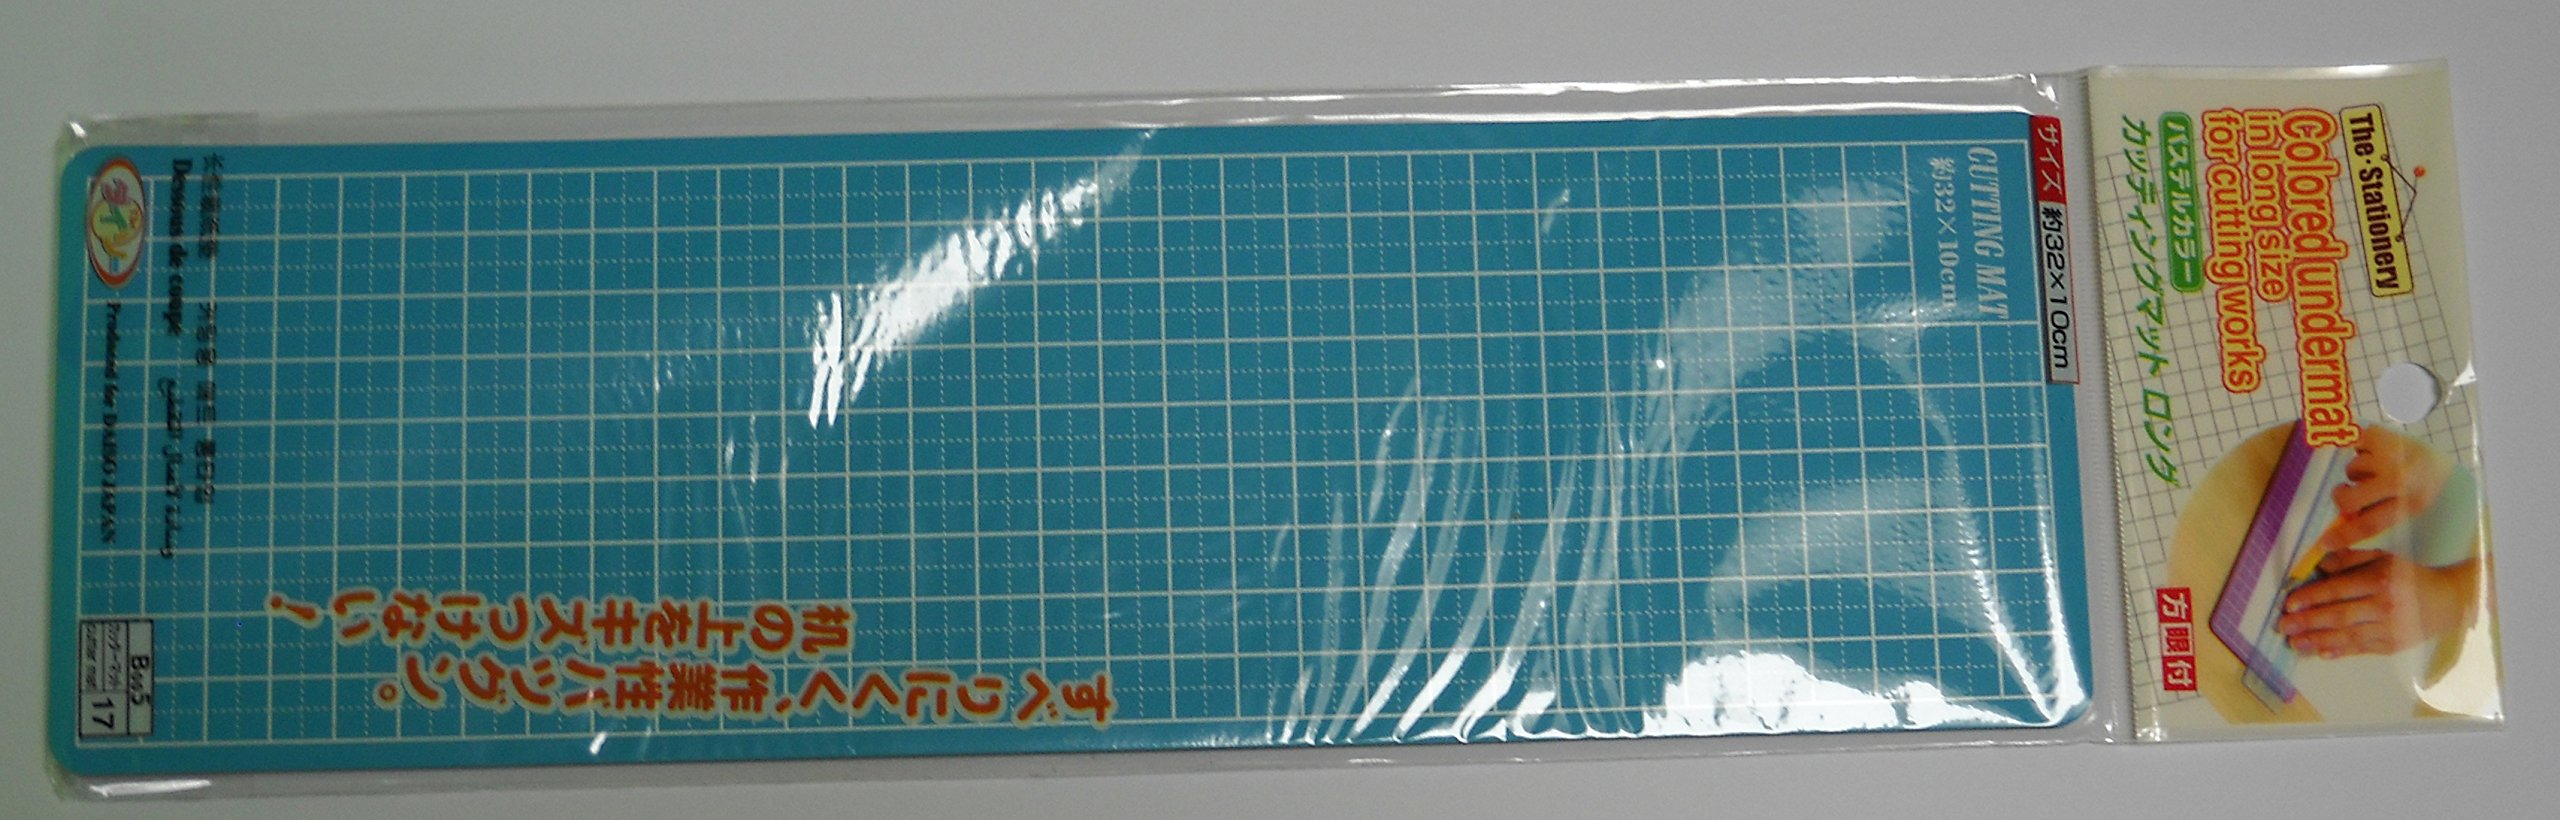 Small Long Self Healing Cutting Mat for on the Go 32.5x10cm (12 5/8 X 4 In)